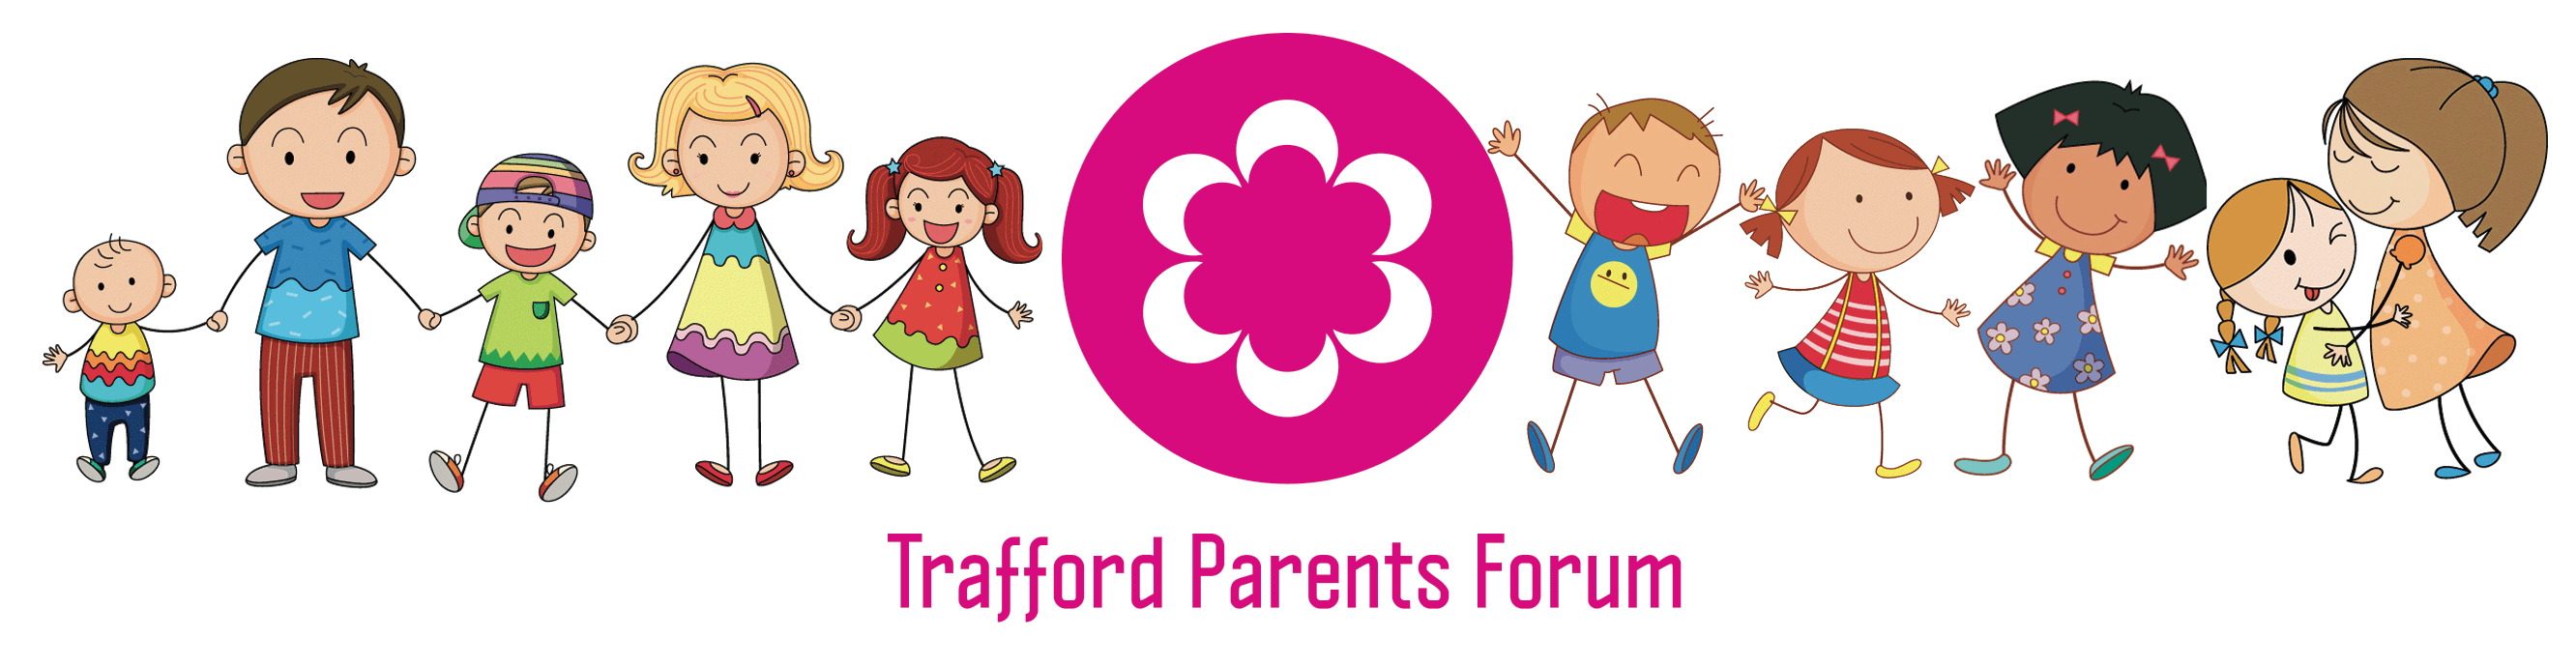 Trafford Parents Forum Home